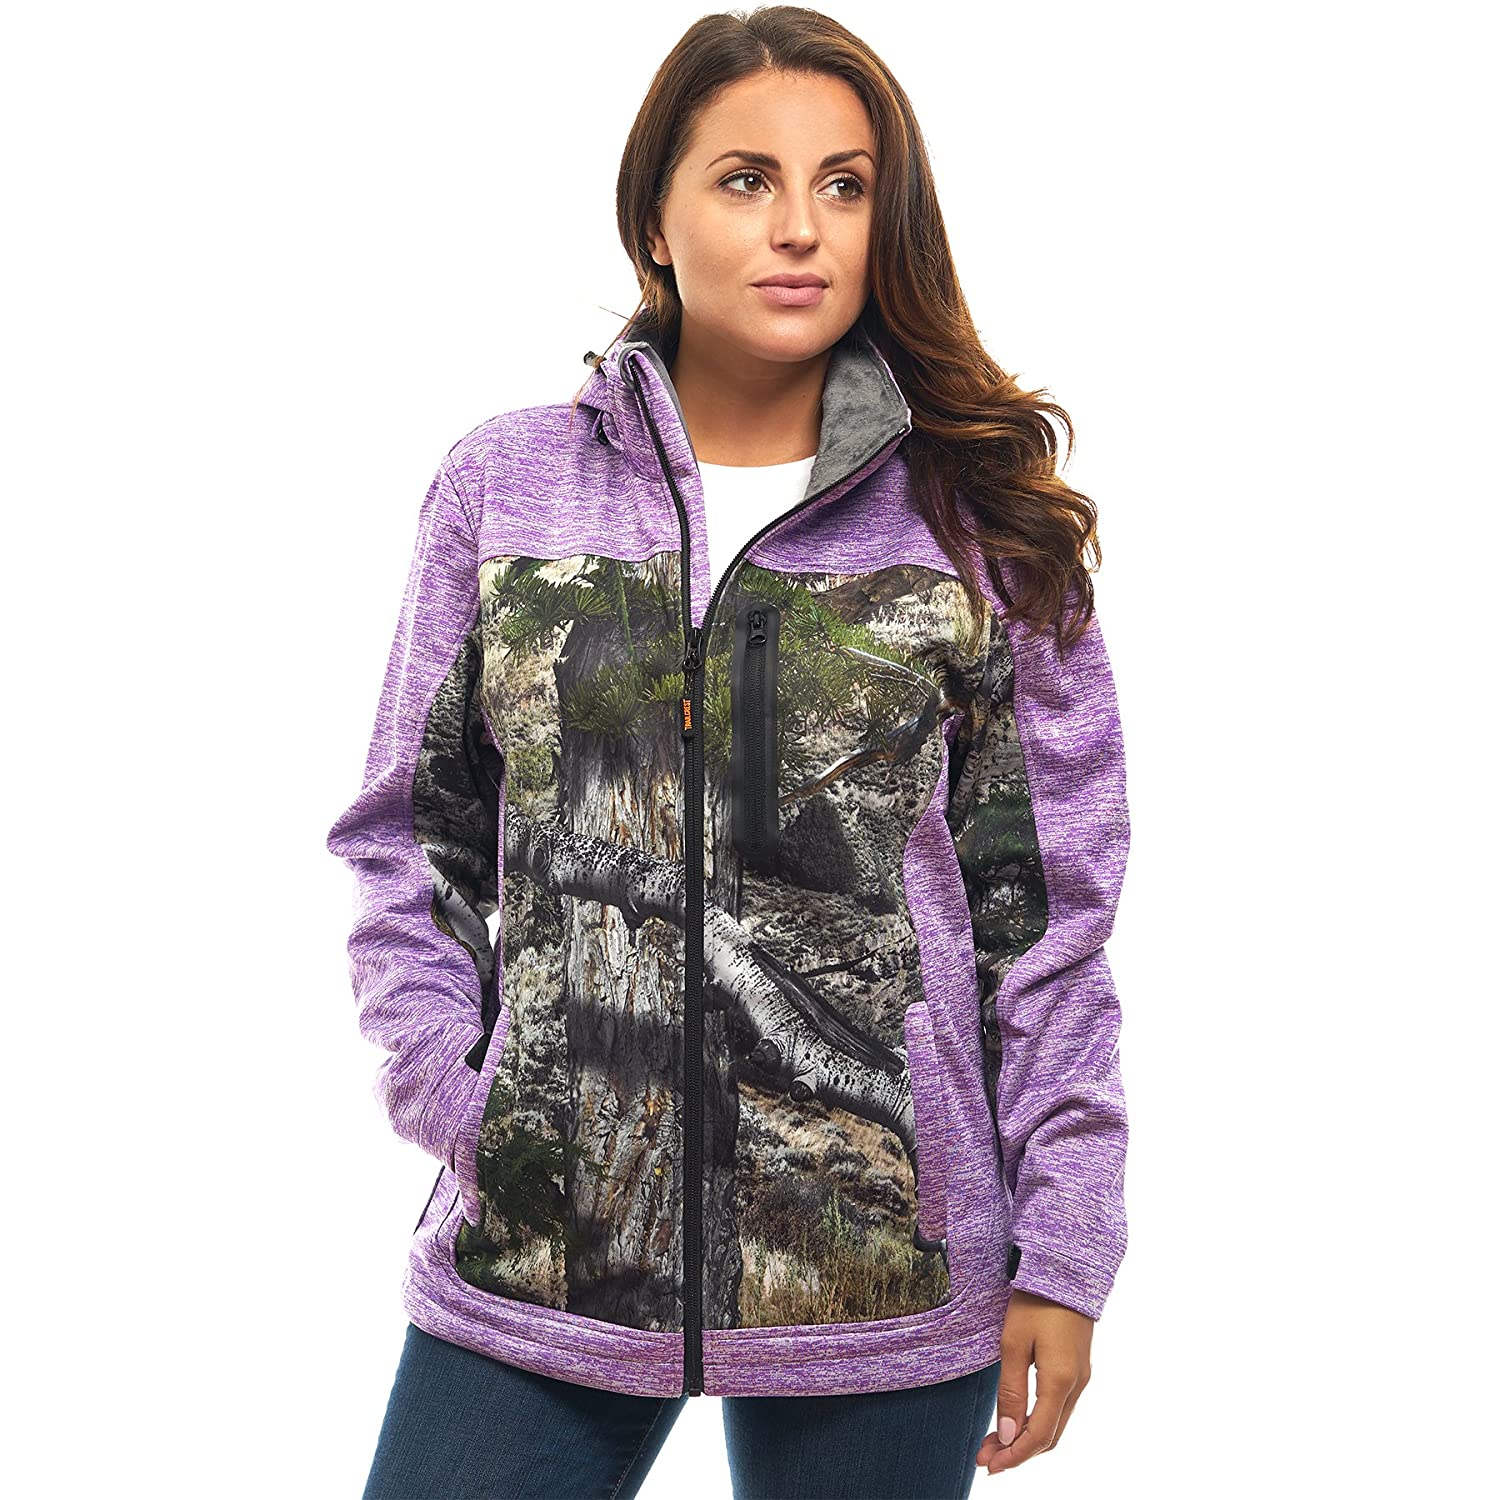 TrailCrest OUTERWEAR レディース B0749BHMGT XL|Purple Heather Mountain CountryTM Purple Heather Mountain CountryTM XL